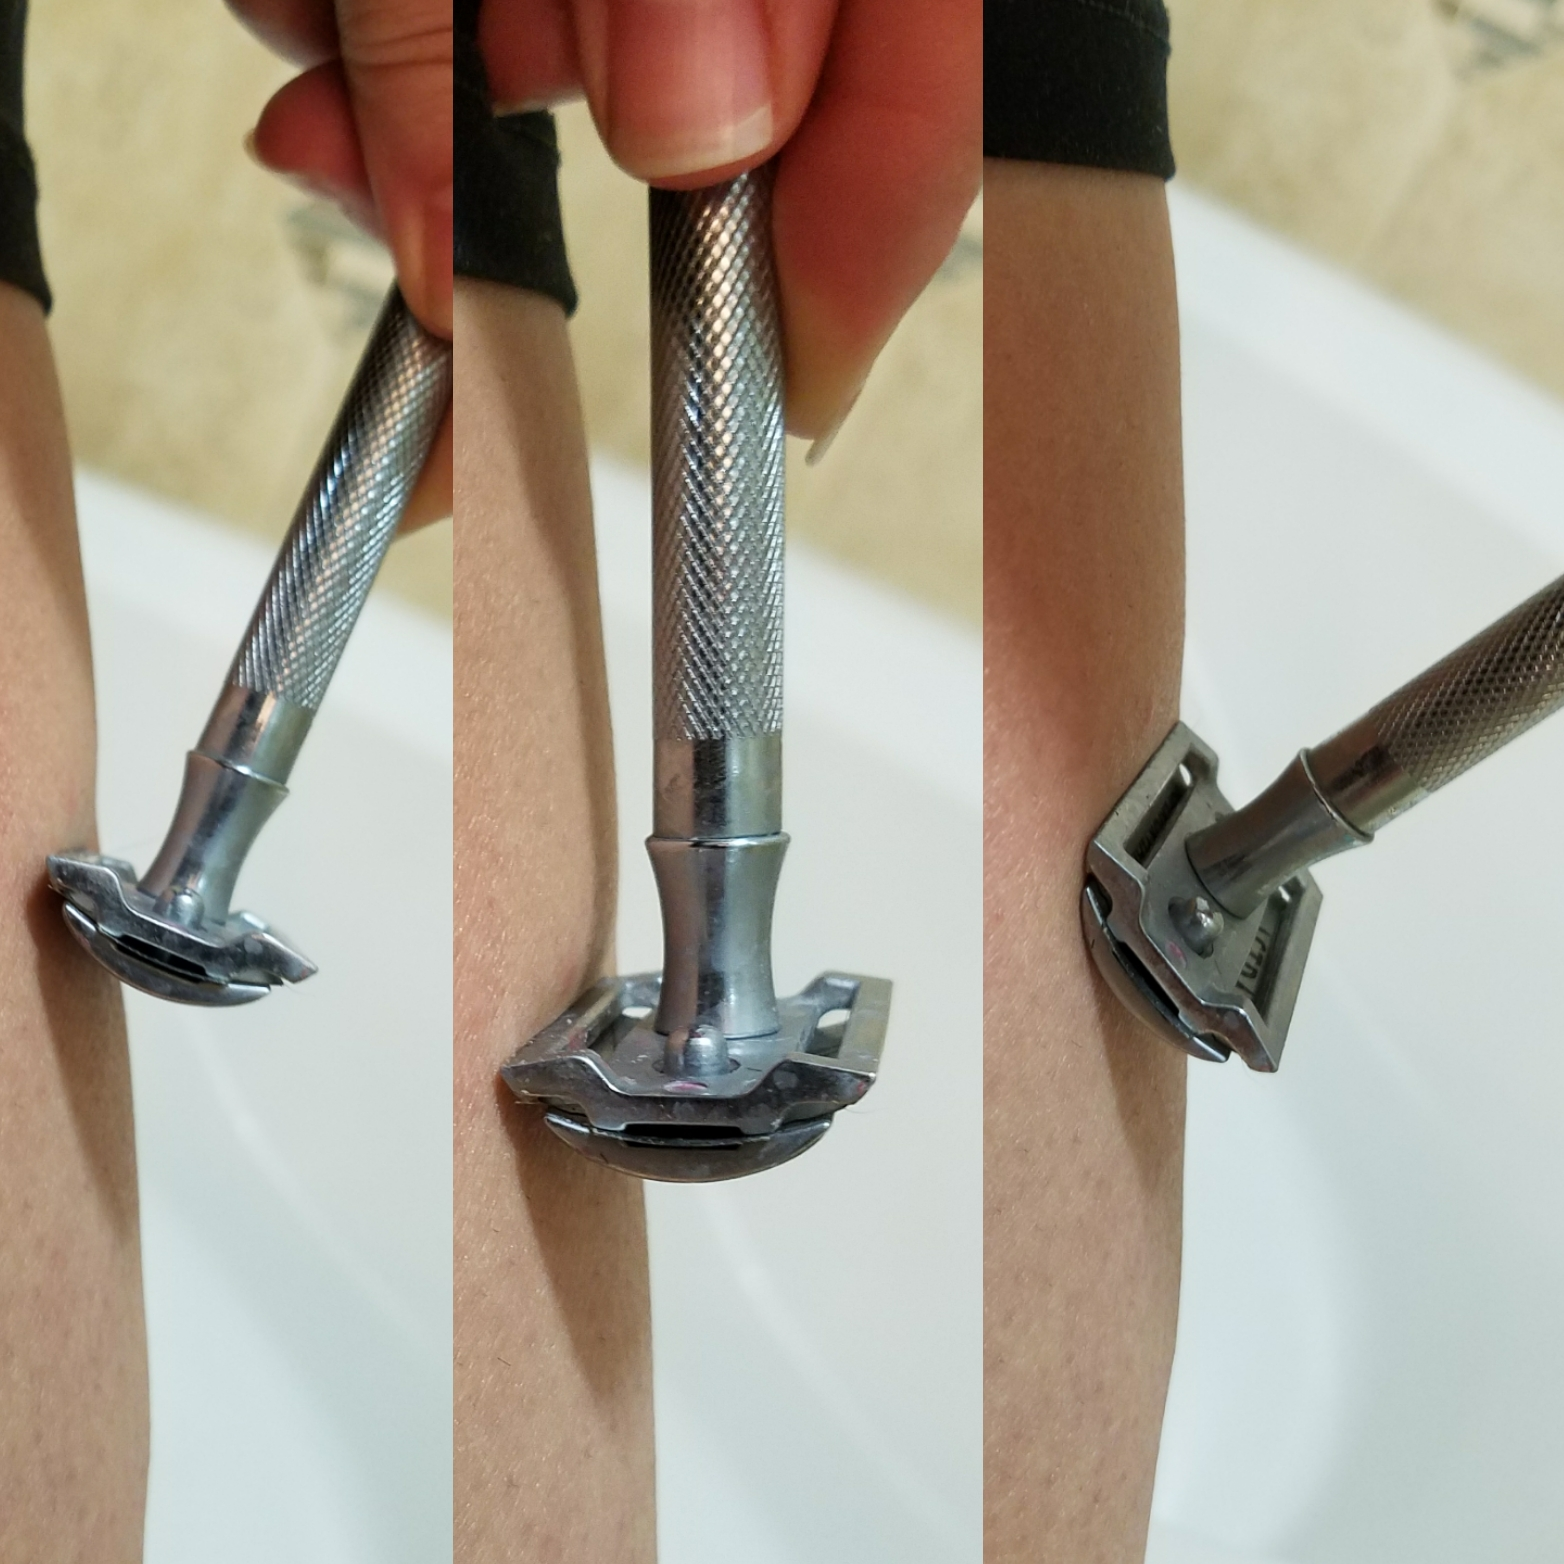 How To Use A Safety Razor For A Close Shave And Not Get Cut